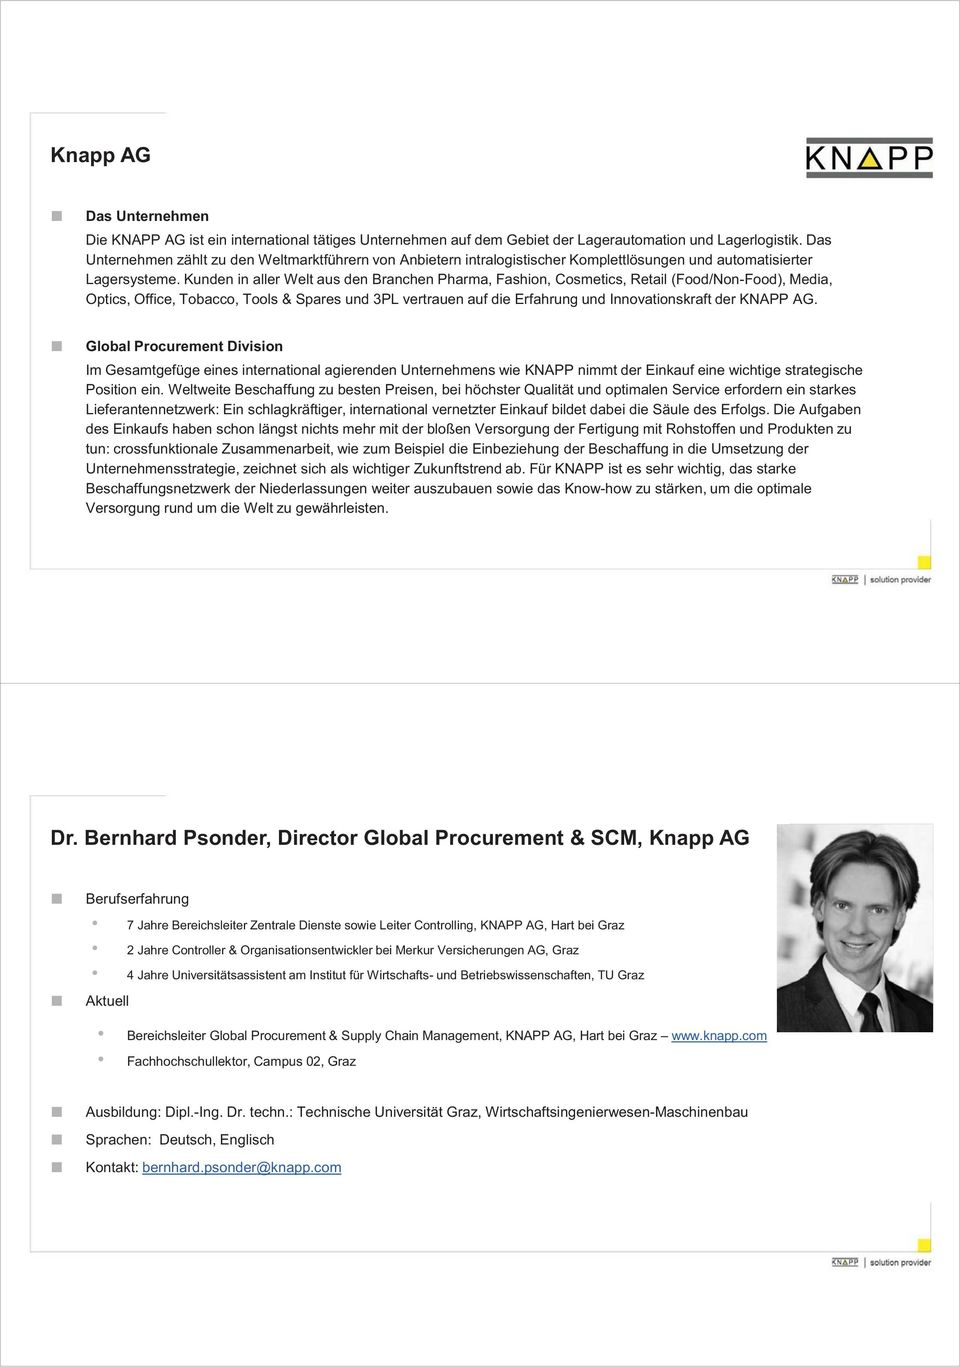 Kunden in aller Welt aus den Branchen Pharma, Fashion, Cosmetics, Retail (Food/Non-Food), Media, Optics, Office, Tobacco, Tools & Spares und 3PL vertrauen auf die Erfahrung und Innovationskraft der